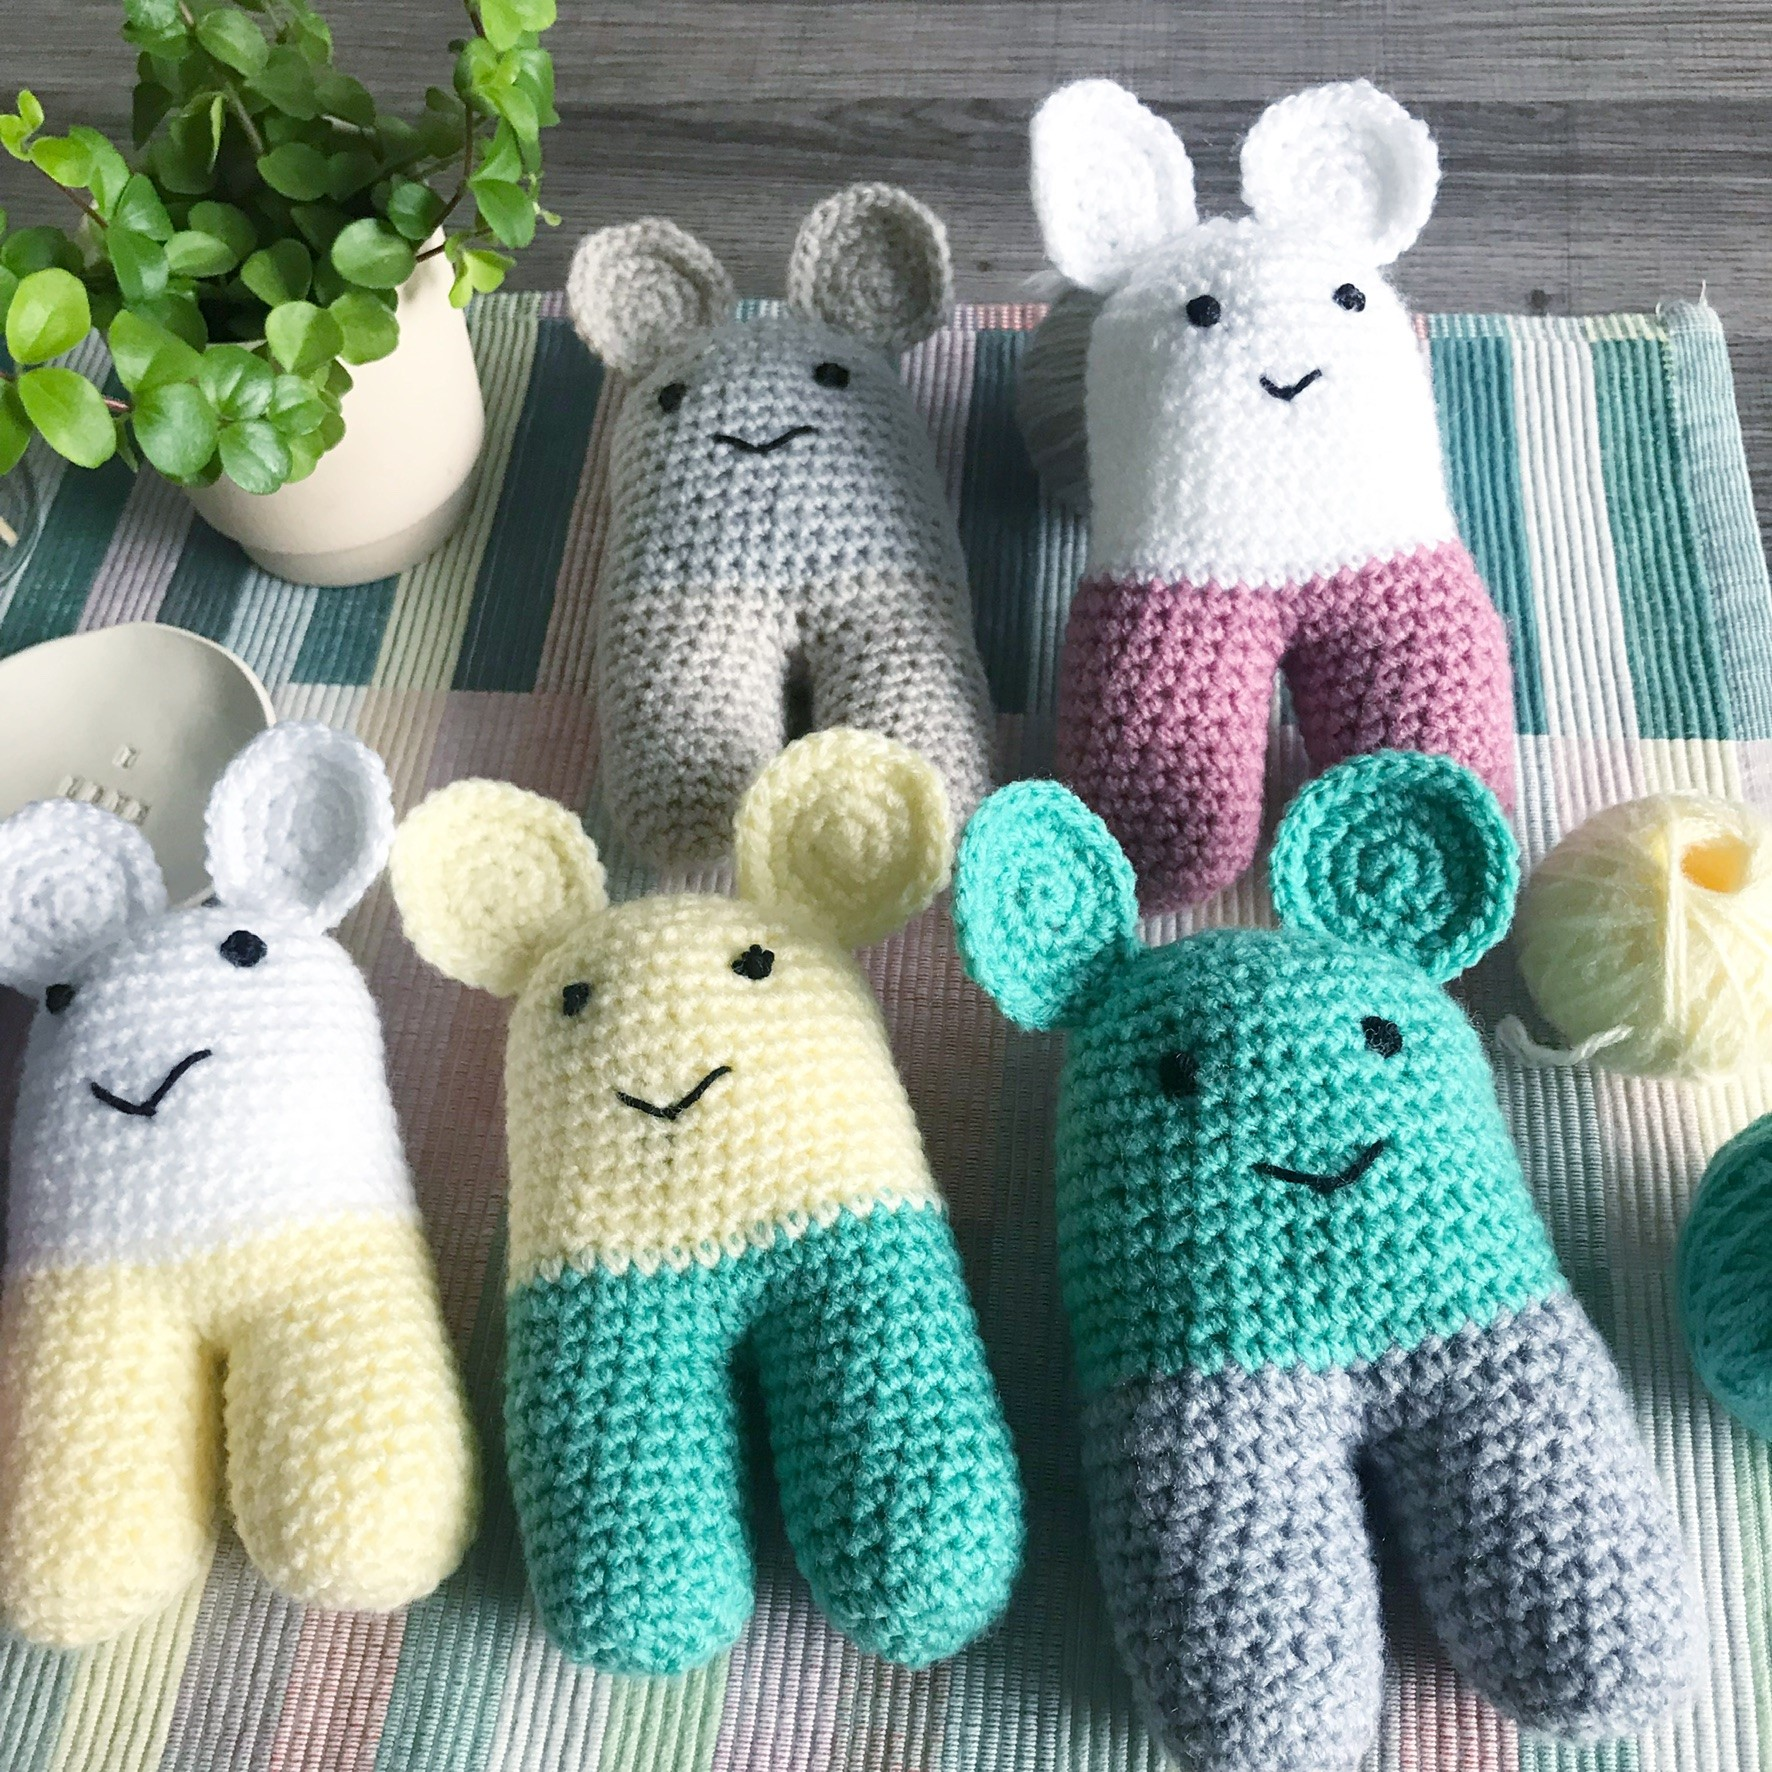 12 Adorable Free Toy Crochet Patterns • Simply Collectible Crochet | 1772x1772